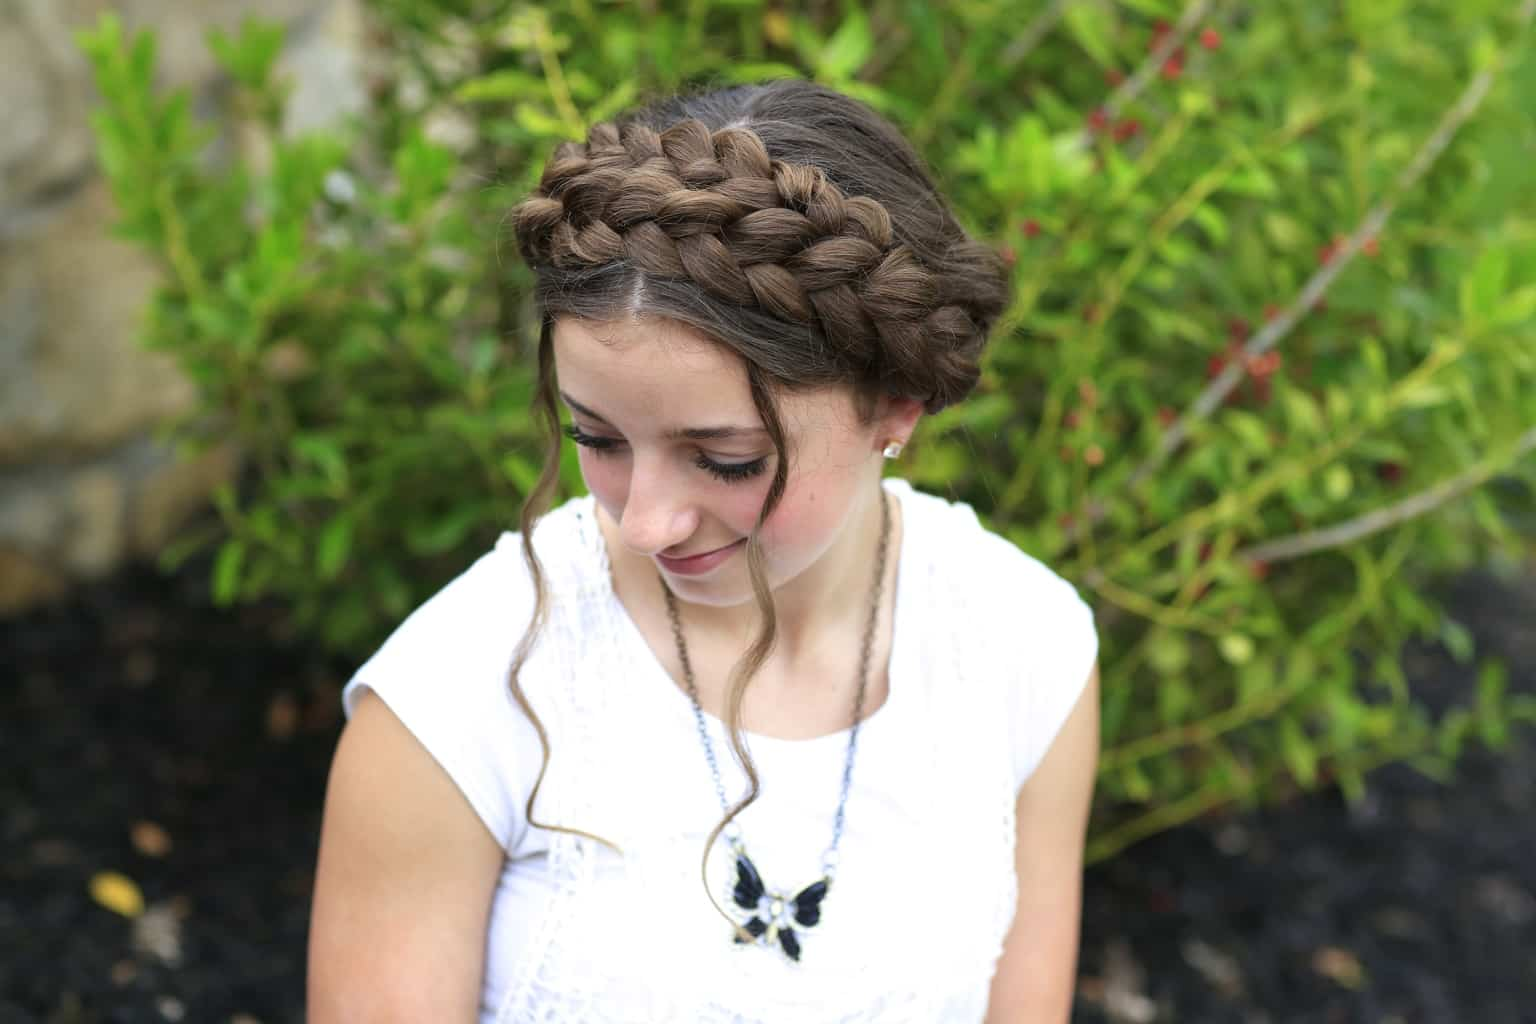 21 Cute And Trendy Hairstyles For Black Teenage Girls: 7 Stunning French Braided Buns For Women